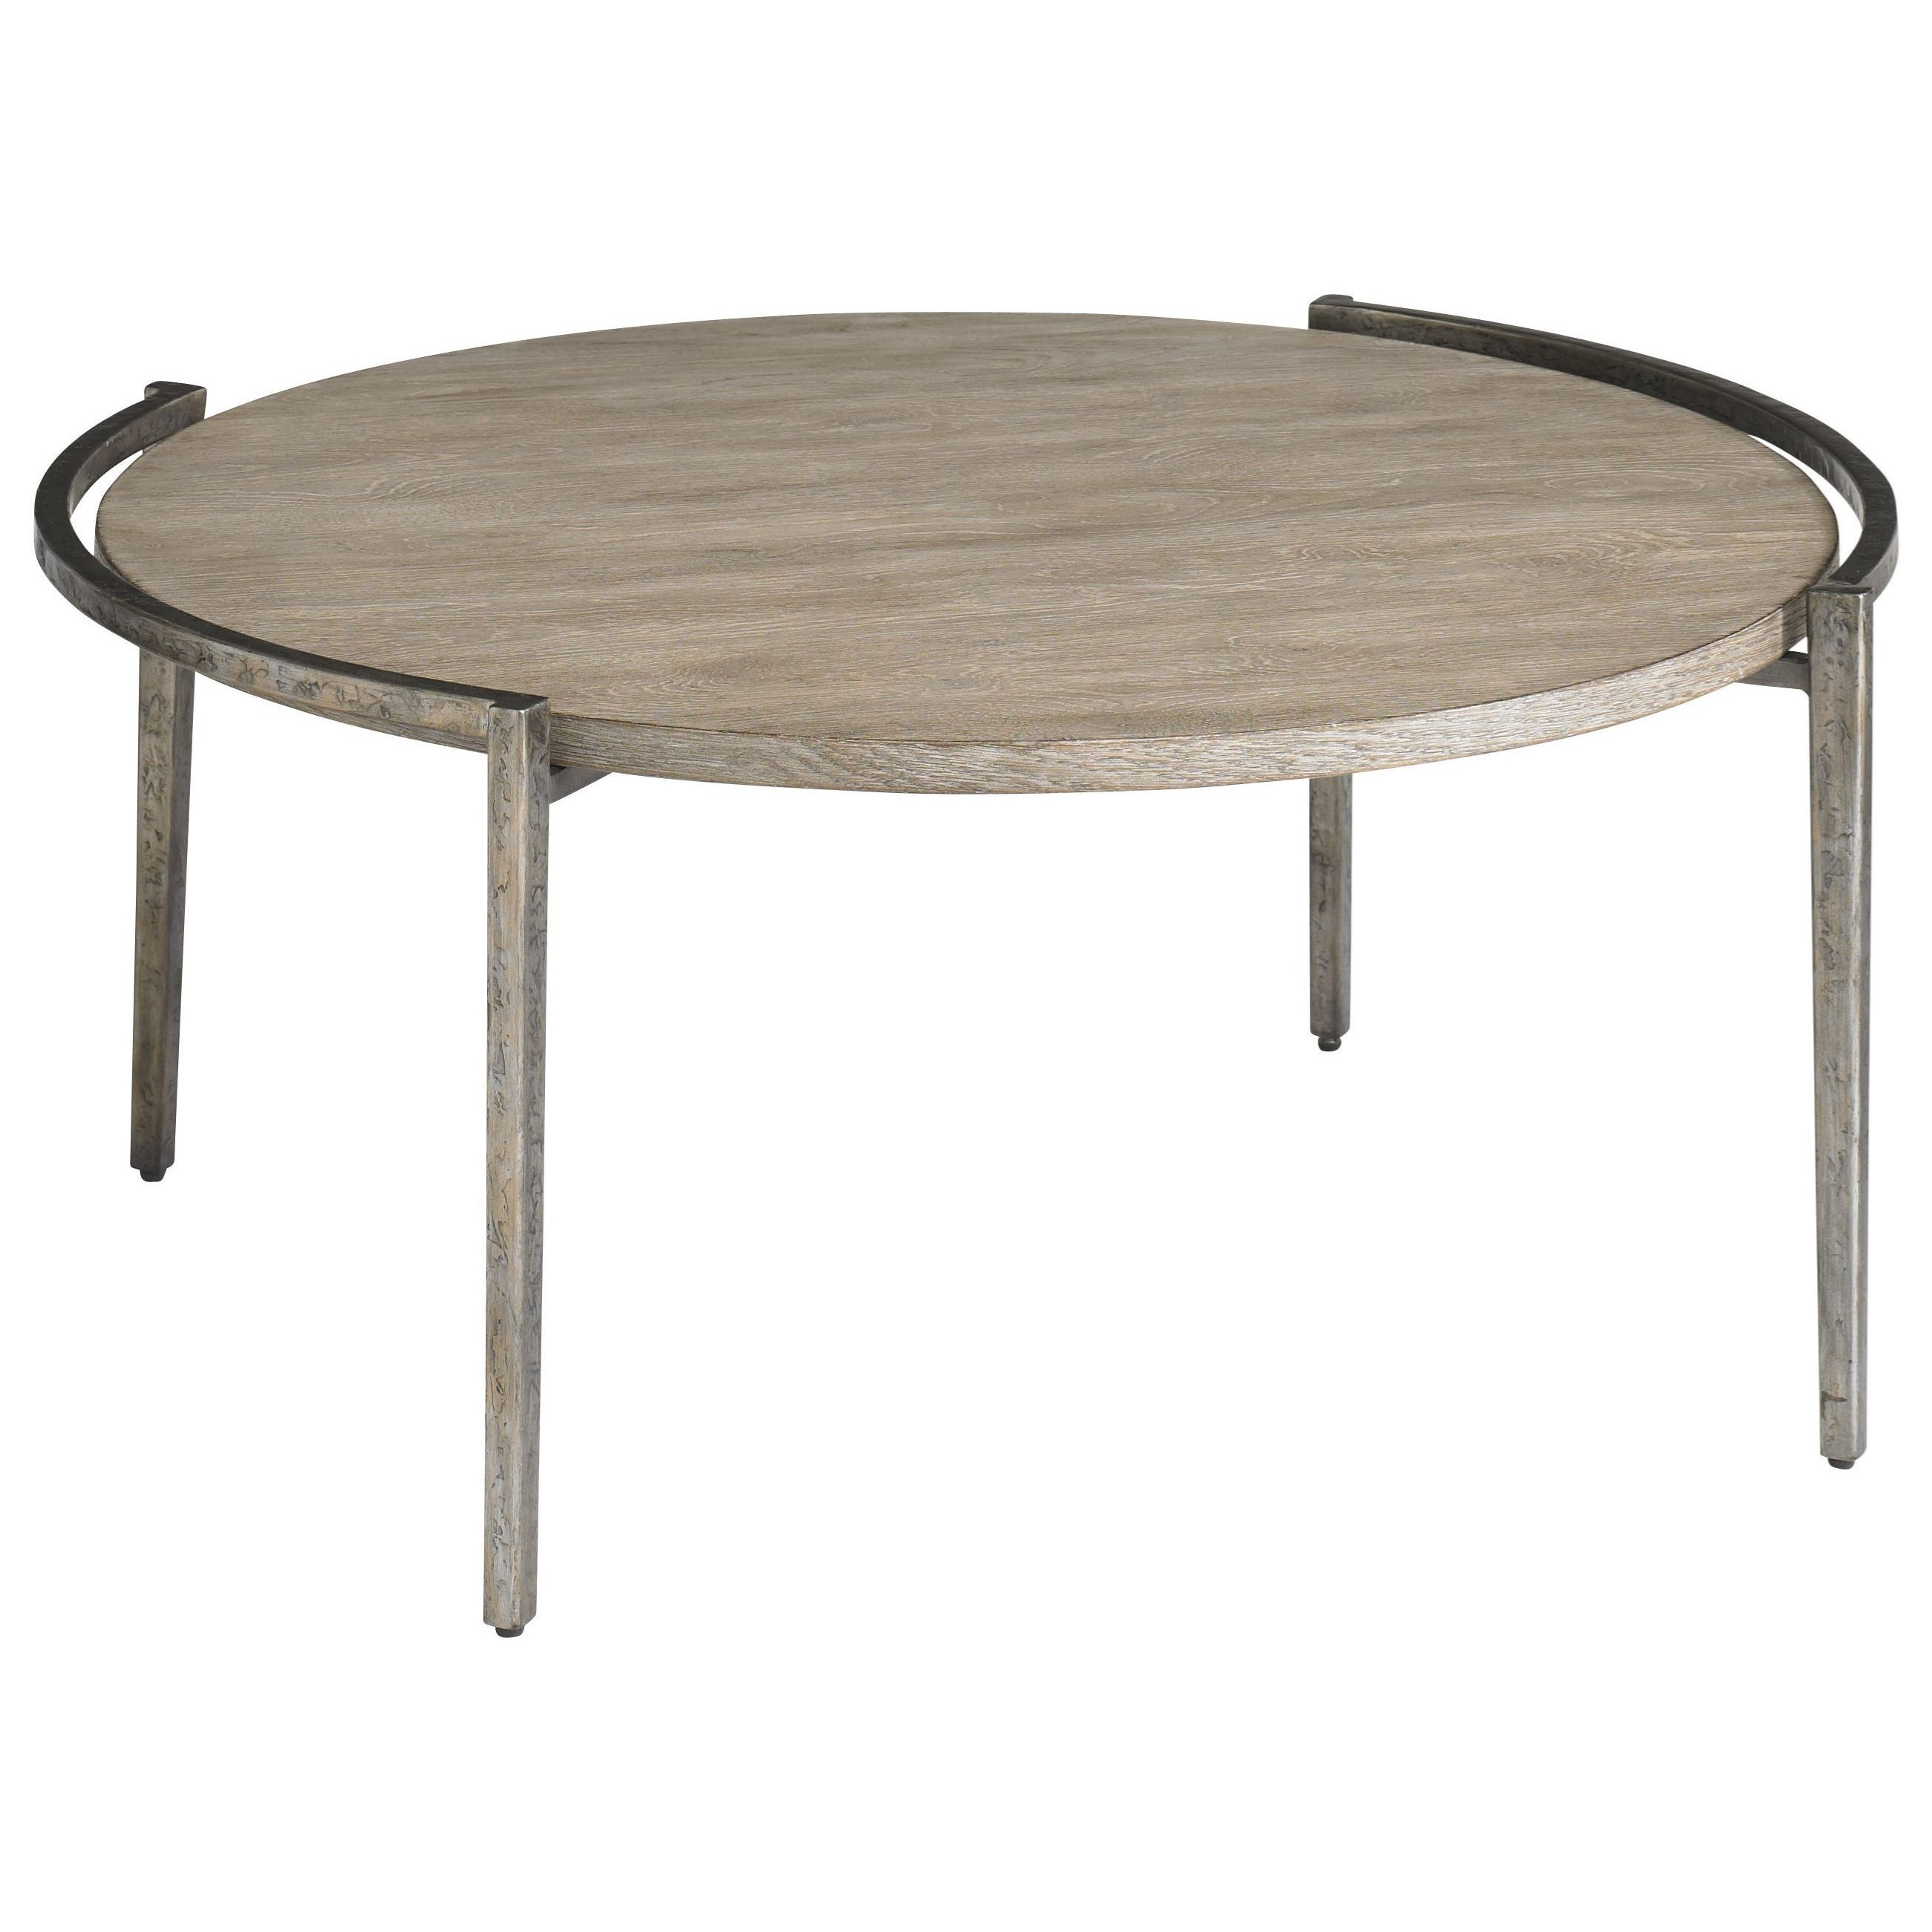 Chelsea Pier Round Cocktail Table by Bassett at Bassett of Cool Springs